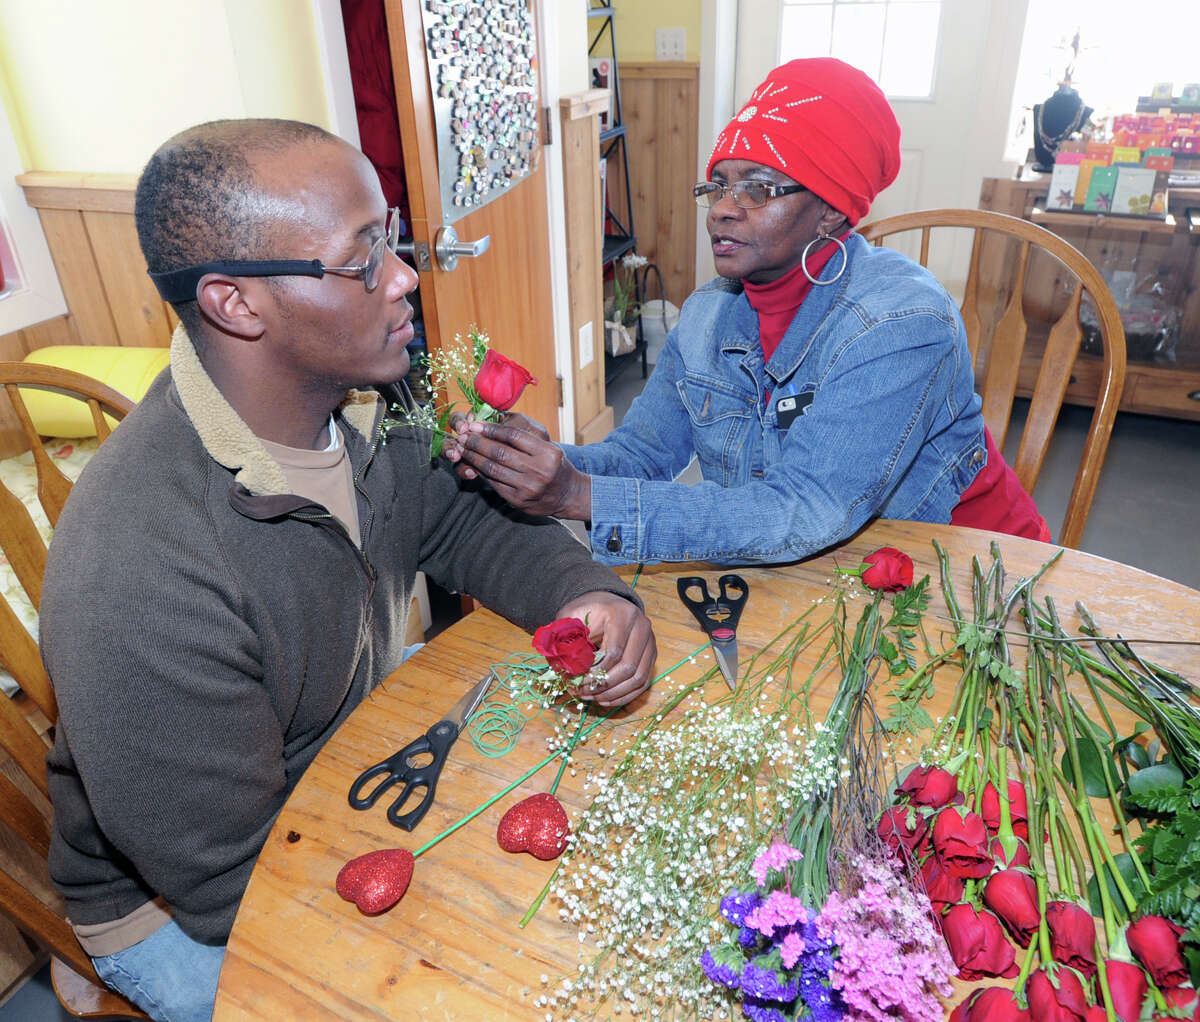 Abilis client Theo Brown, left, gets a lesson in boutonniere pinning from Doreen Harrison (red hat), an Abilis job coach, who was leading a group of Abilis clients in the fine art of boutonniere making at Abilis in Greenwich, Conn., Friday, Feb. 13, 2015. The boutonnieres will be exchanged for corsages by Abilis couples during the Sweethearst Dance that is being held at the Arthur Murray Grande Ballroom in Greenwich on Saturday night (Valentine's Day evening). According to Harrison, 10 couples will be exchanging flowers with each other and dancing the night away courtesy of Arthur Murray Dance Studio of Greenwich. Theo Brown said he will be attending the dance with his girlfriend, Wendy. Abilis is a greenwich organization that serves people with developmental disabilities.